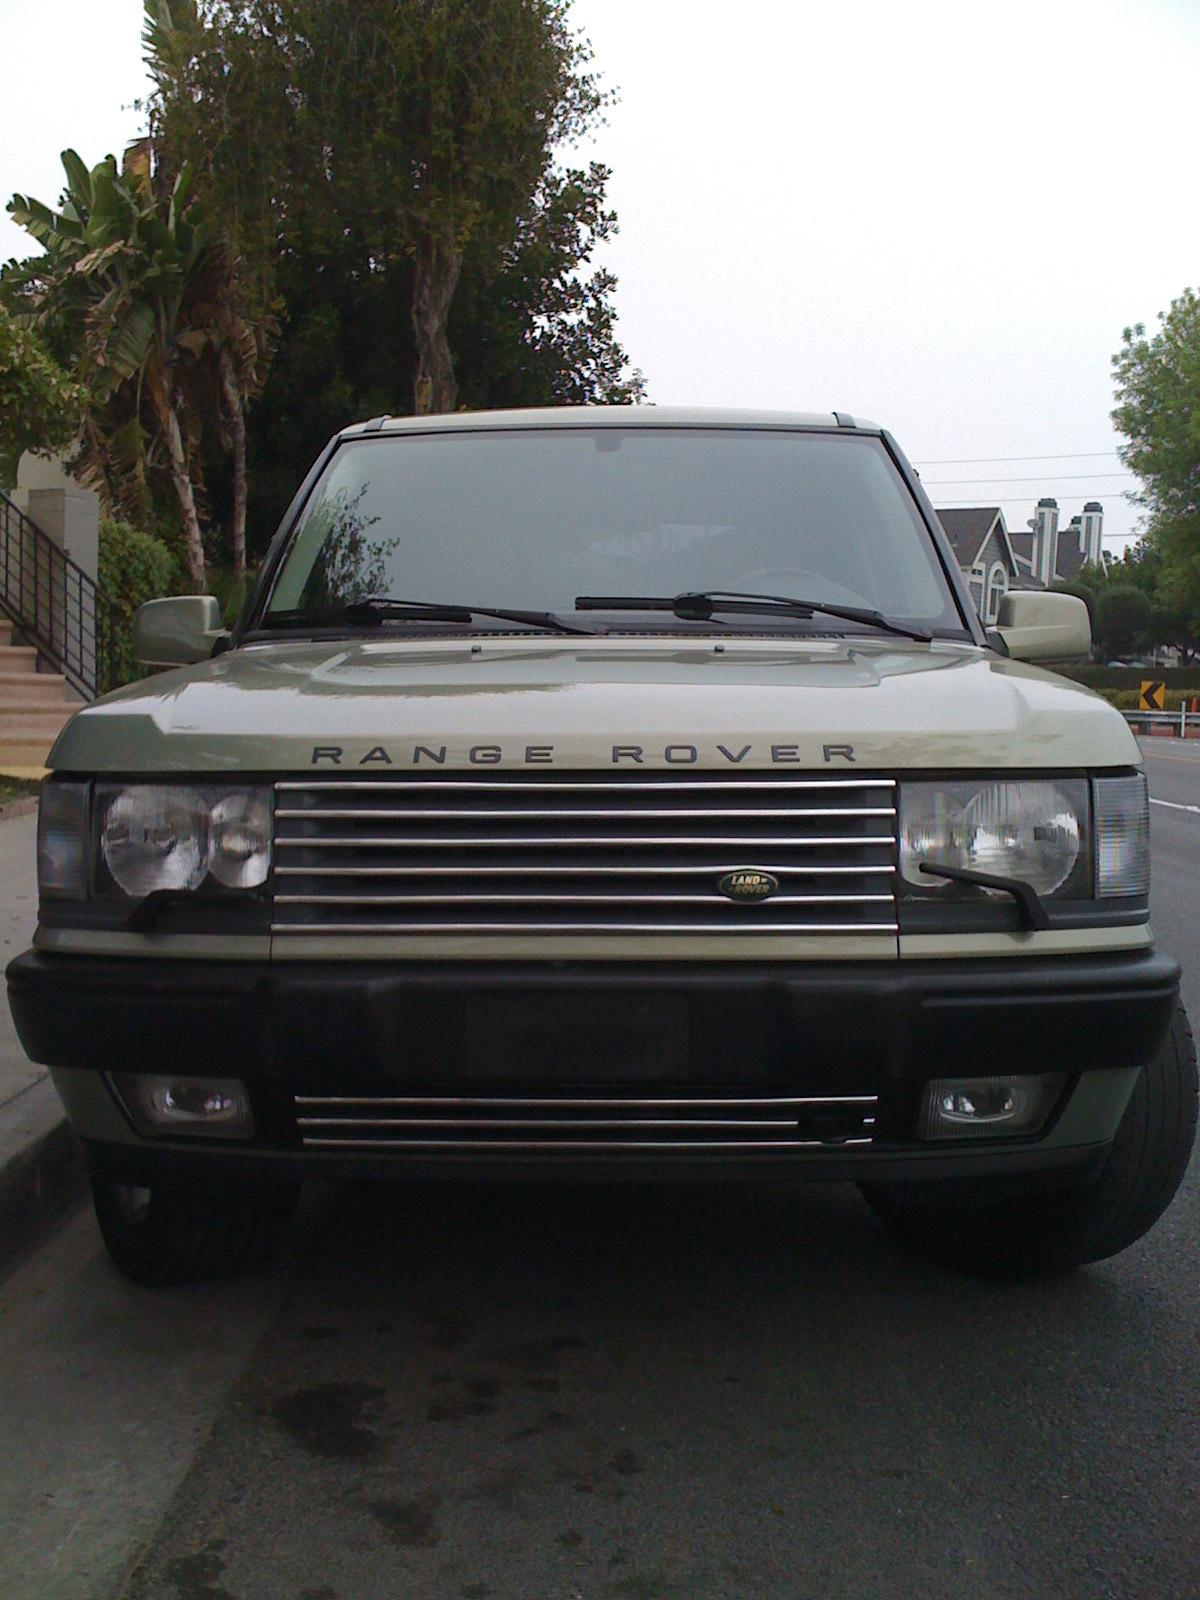 strangerover 2002 land rover range rover specs photos modification info at cardomain. Black Bedroom Furniture Sets. Home Design Ideas